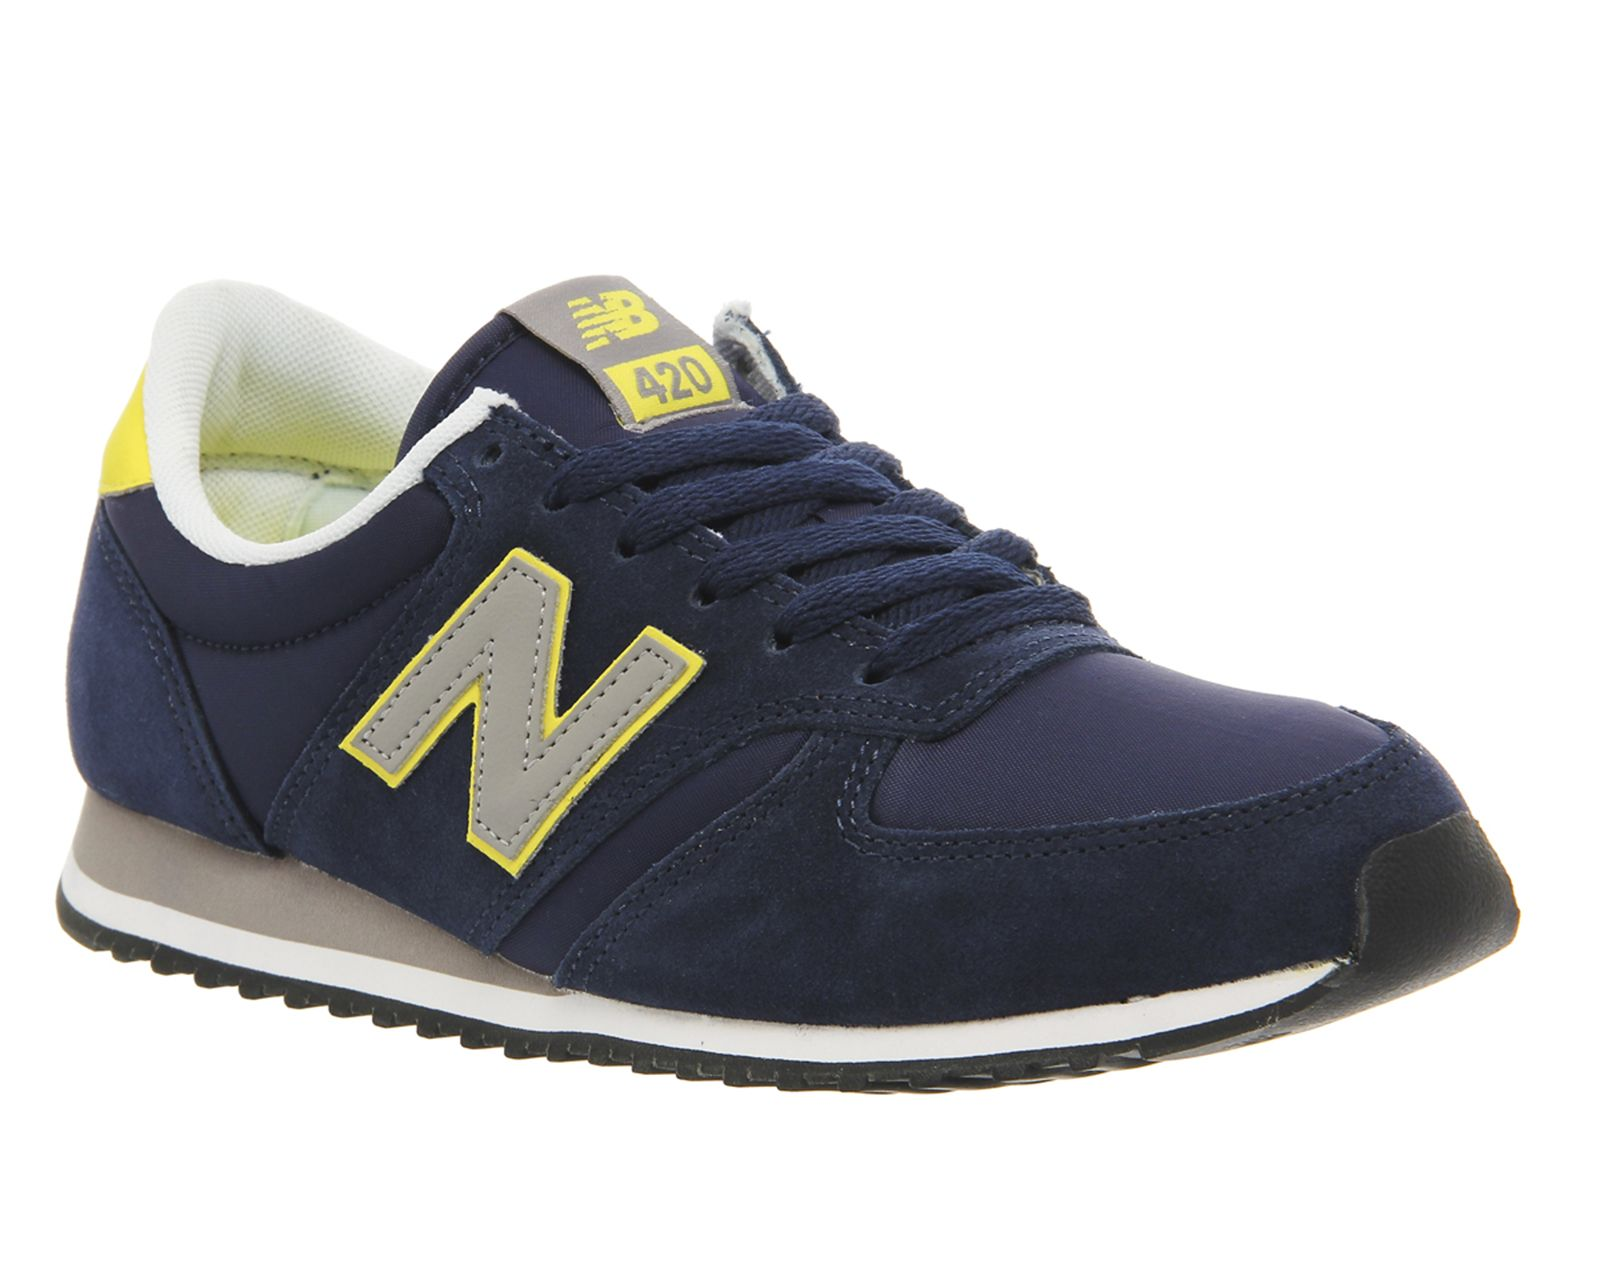 9f7b6b1795f5 new balance navy trainers new balance gym shoes – Red Procesal